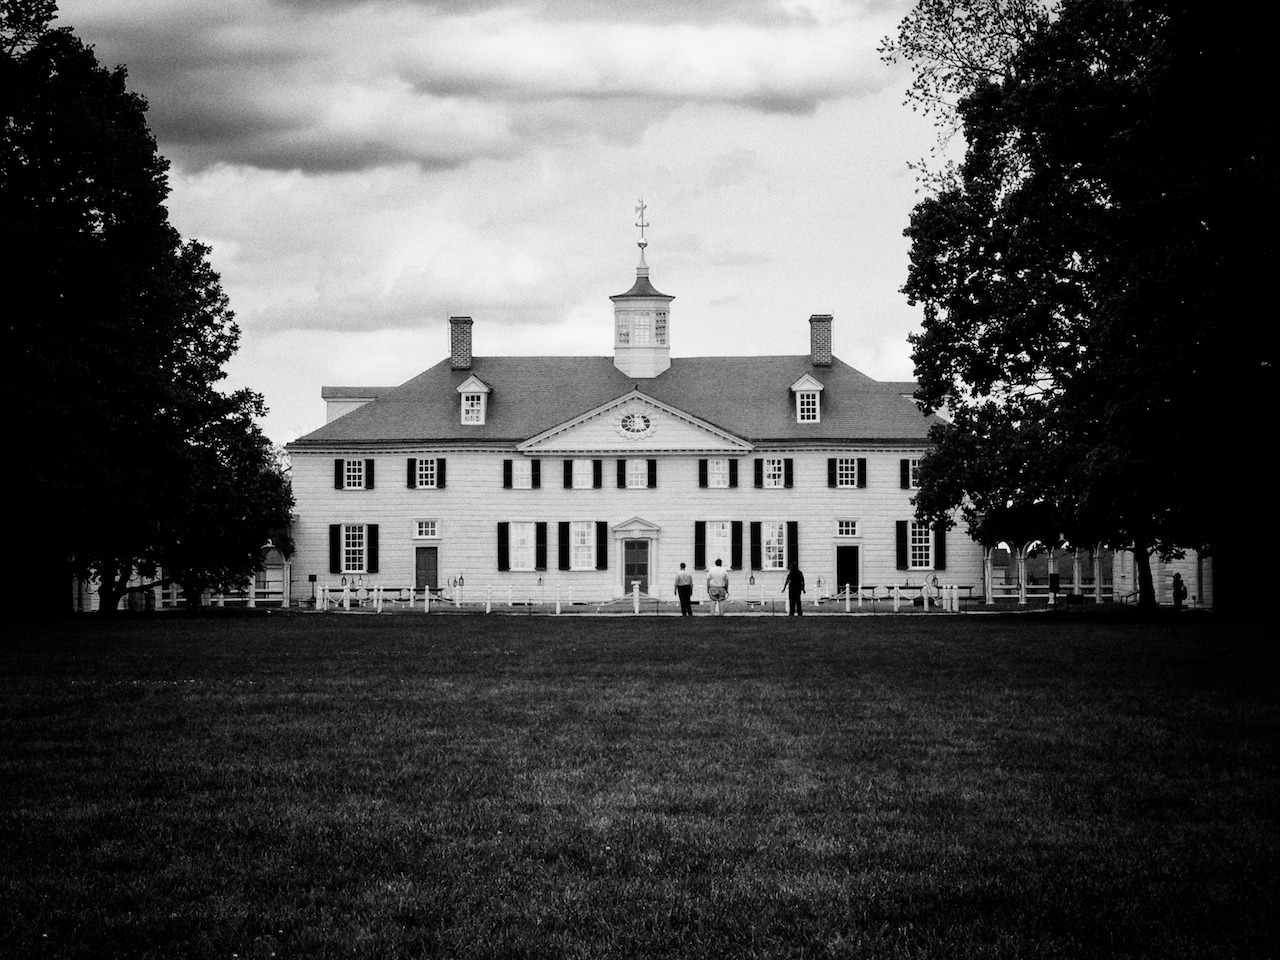 George Washington's mansion at Mount Vernon, Virginia. May 1st, 2012.